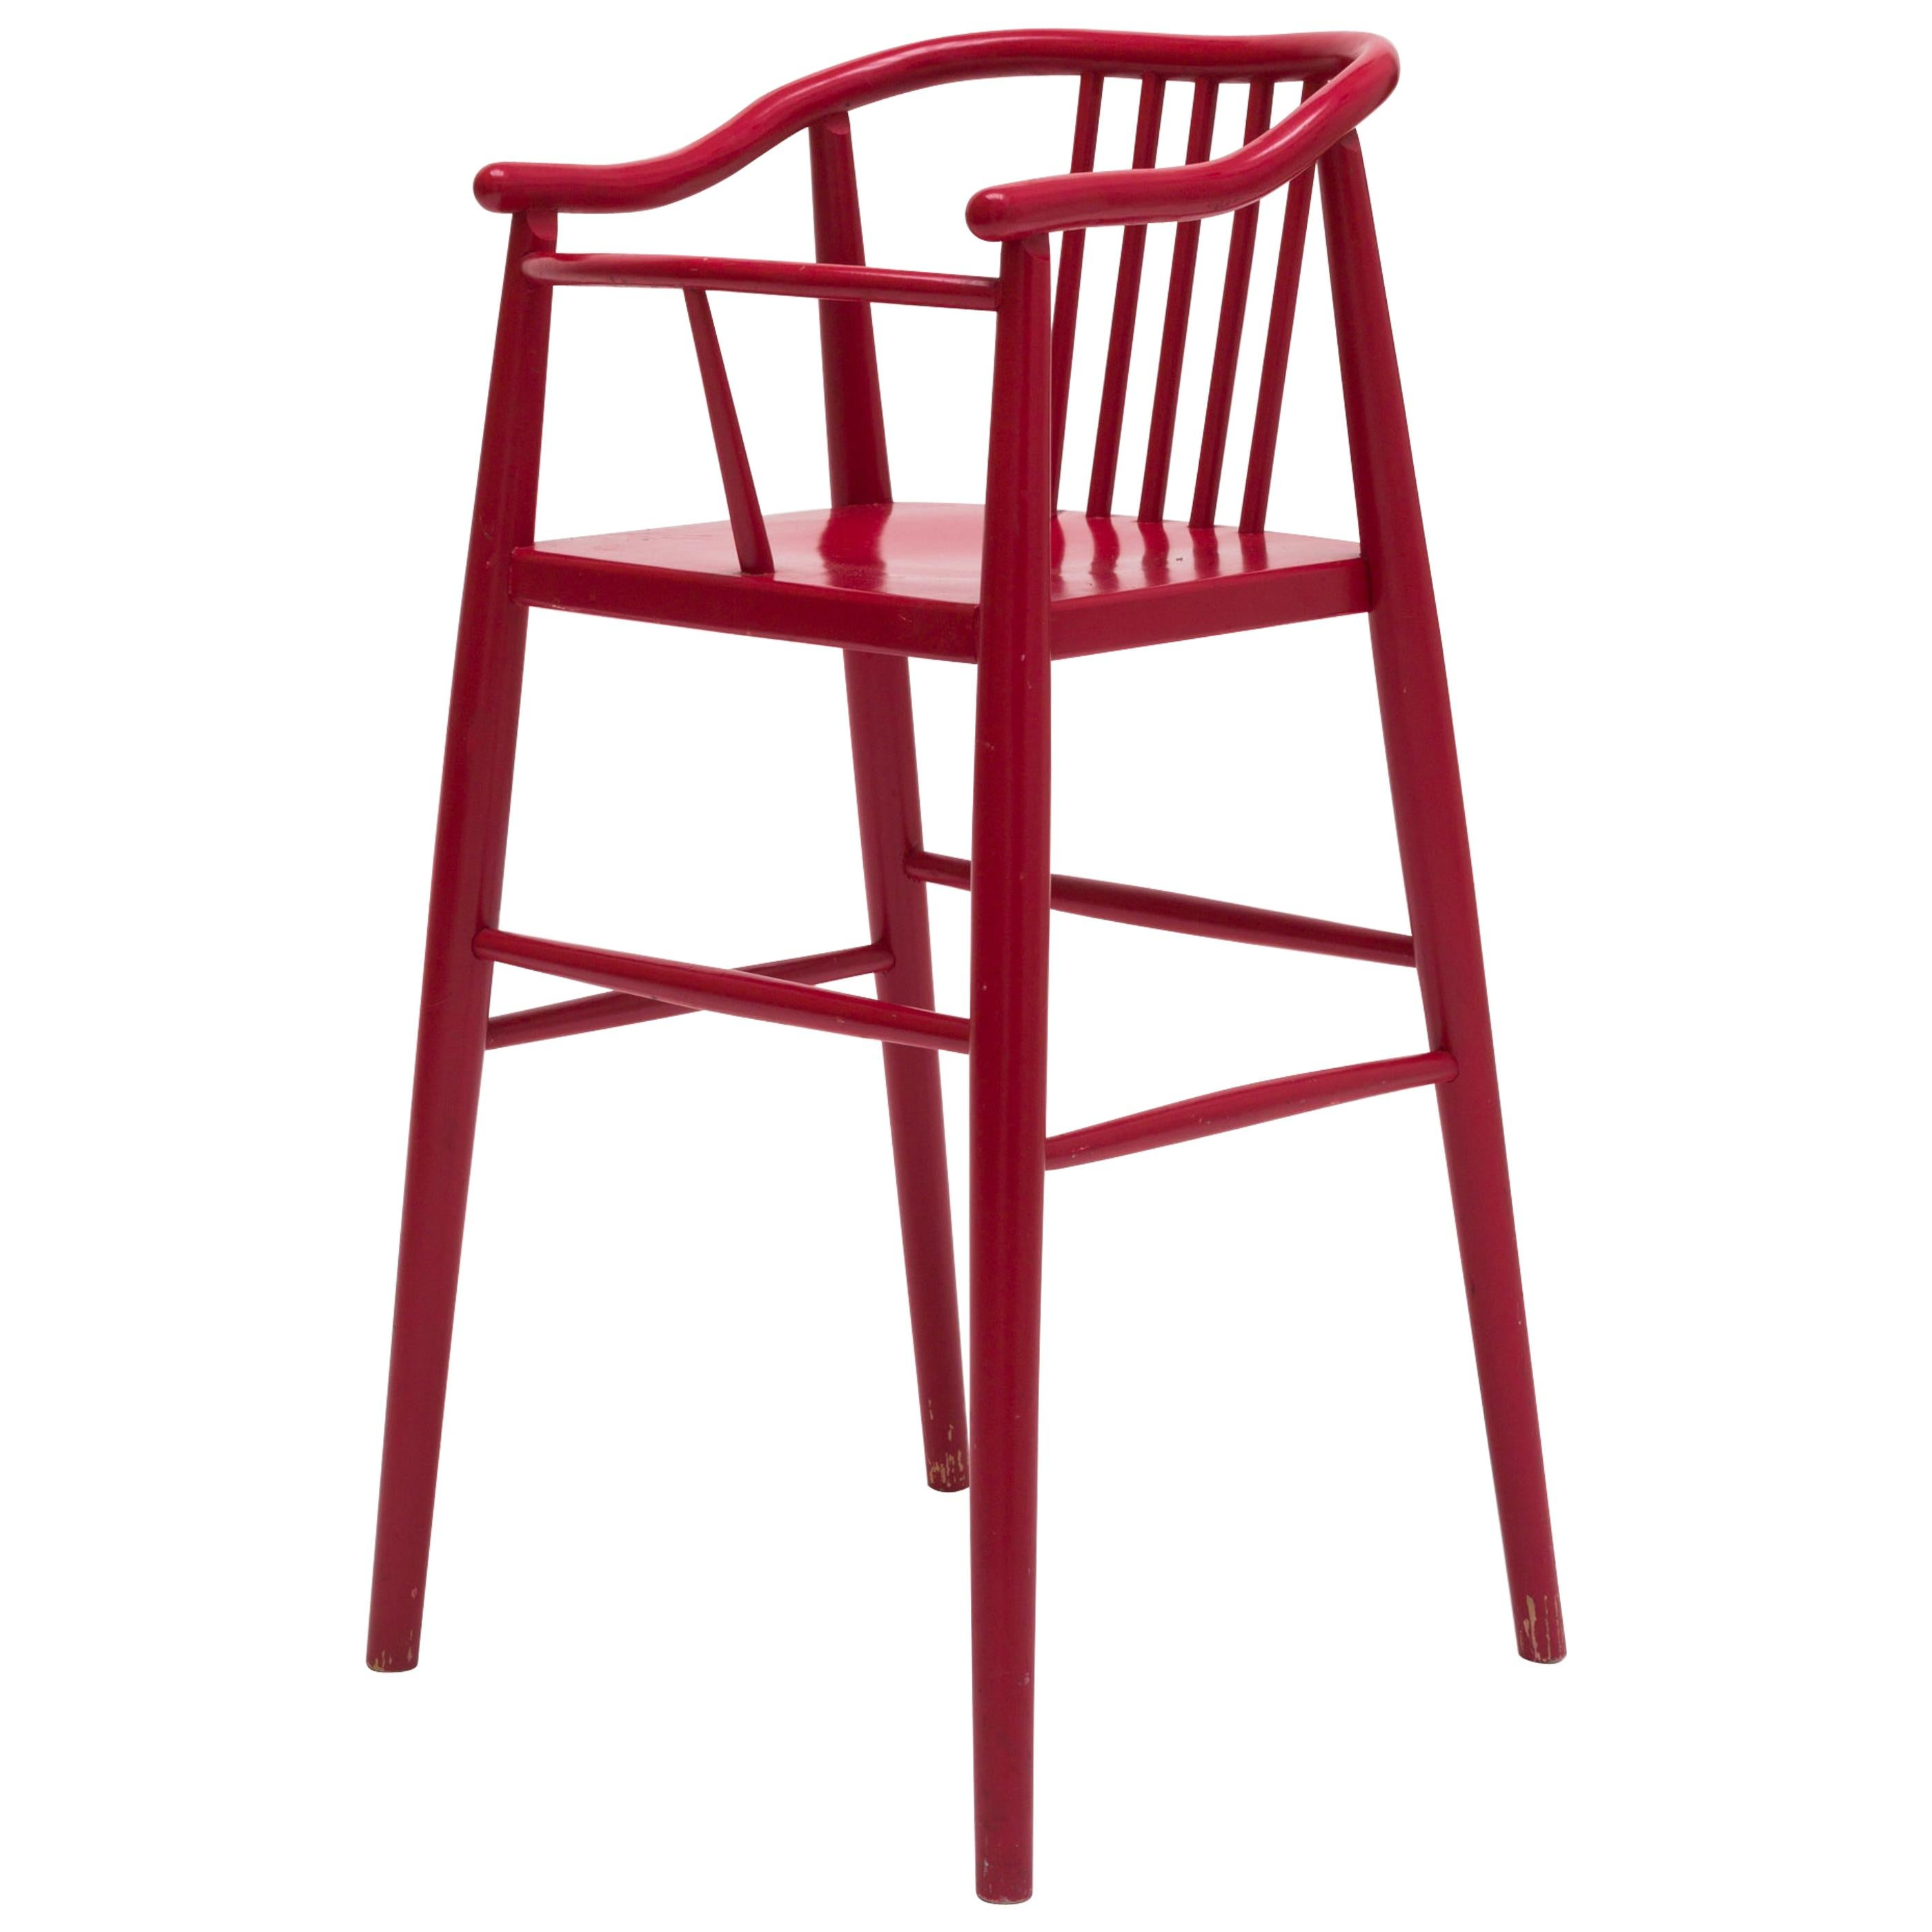 """High Childs Chair """"Peggy"""" by Karin Mobring for Ikea, Sweden, 1950s"""